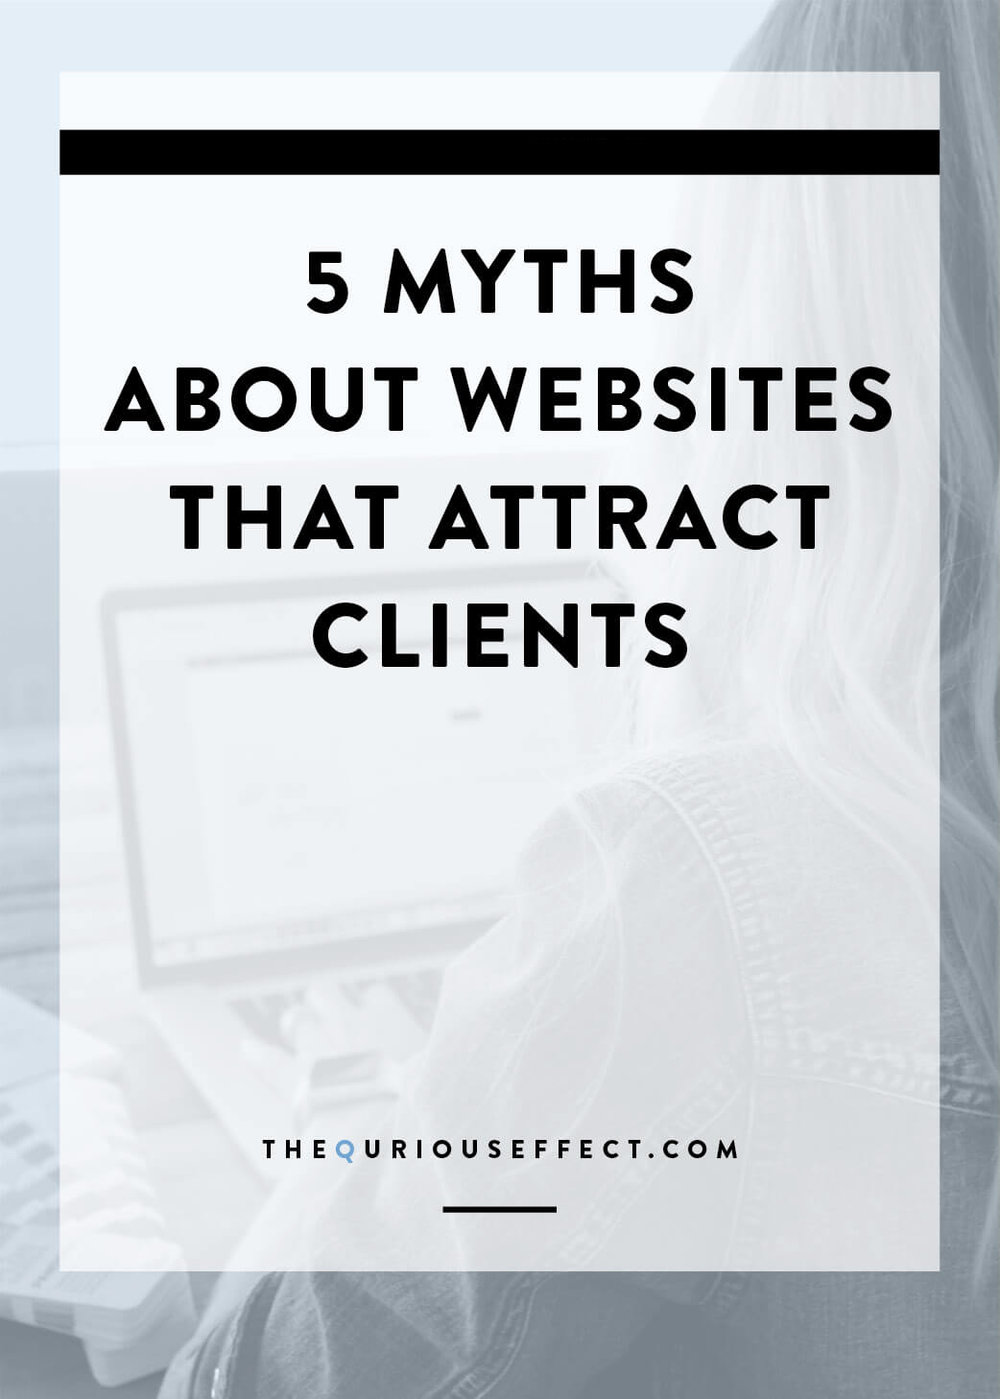 5 Myths about Websites that Attract Clients by The Qurious Effect, Squarespace website design studio